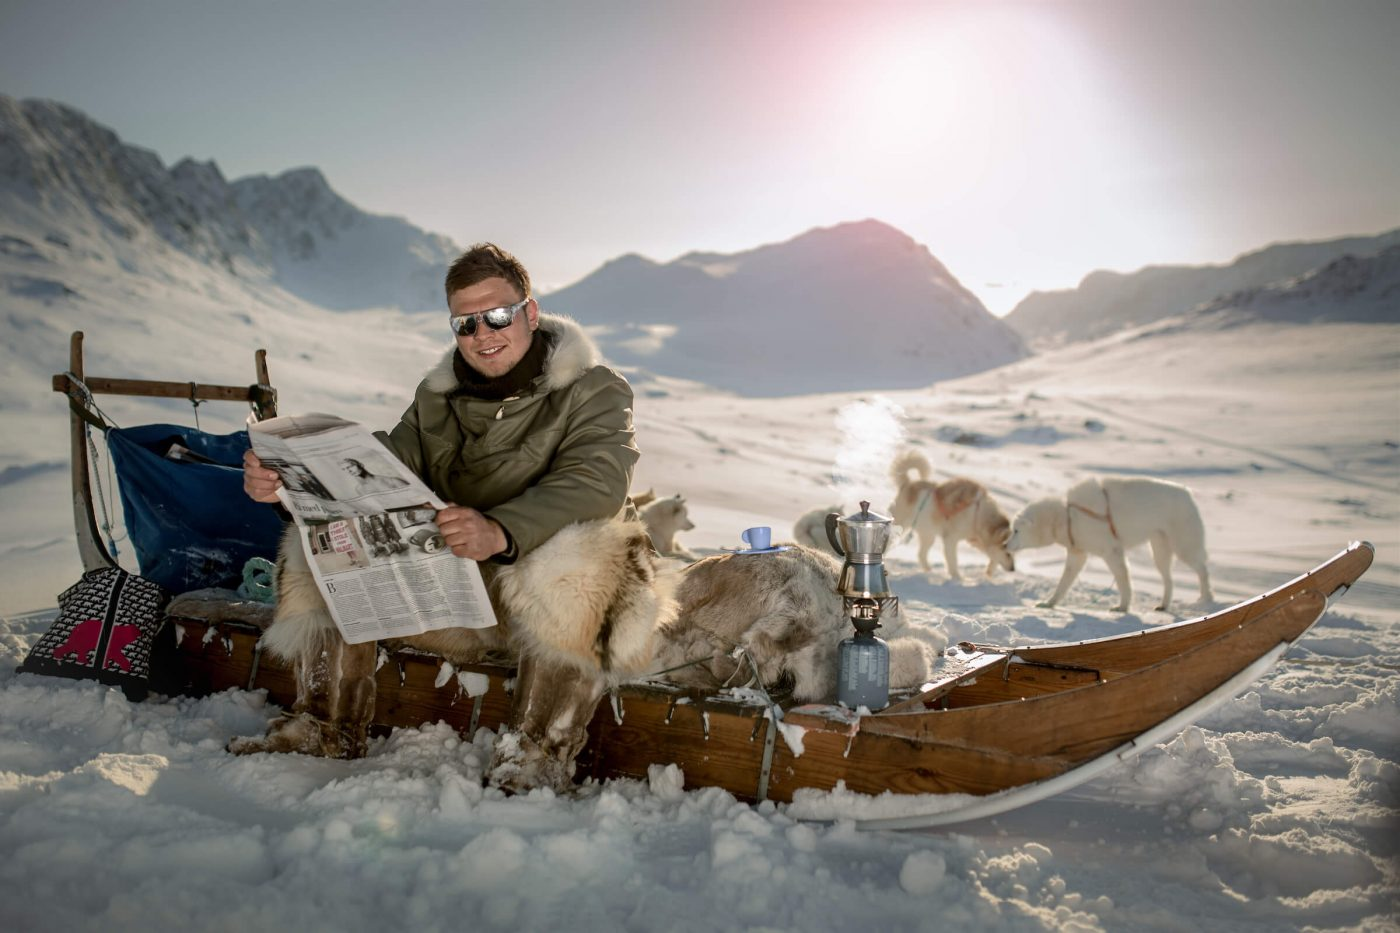 A dog sled driver from Sisimiut brewing espresso